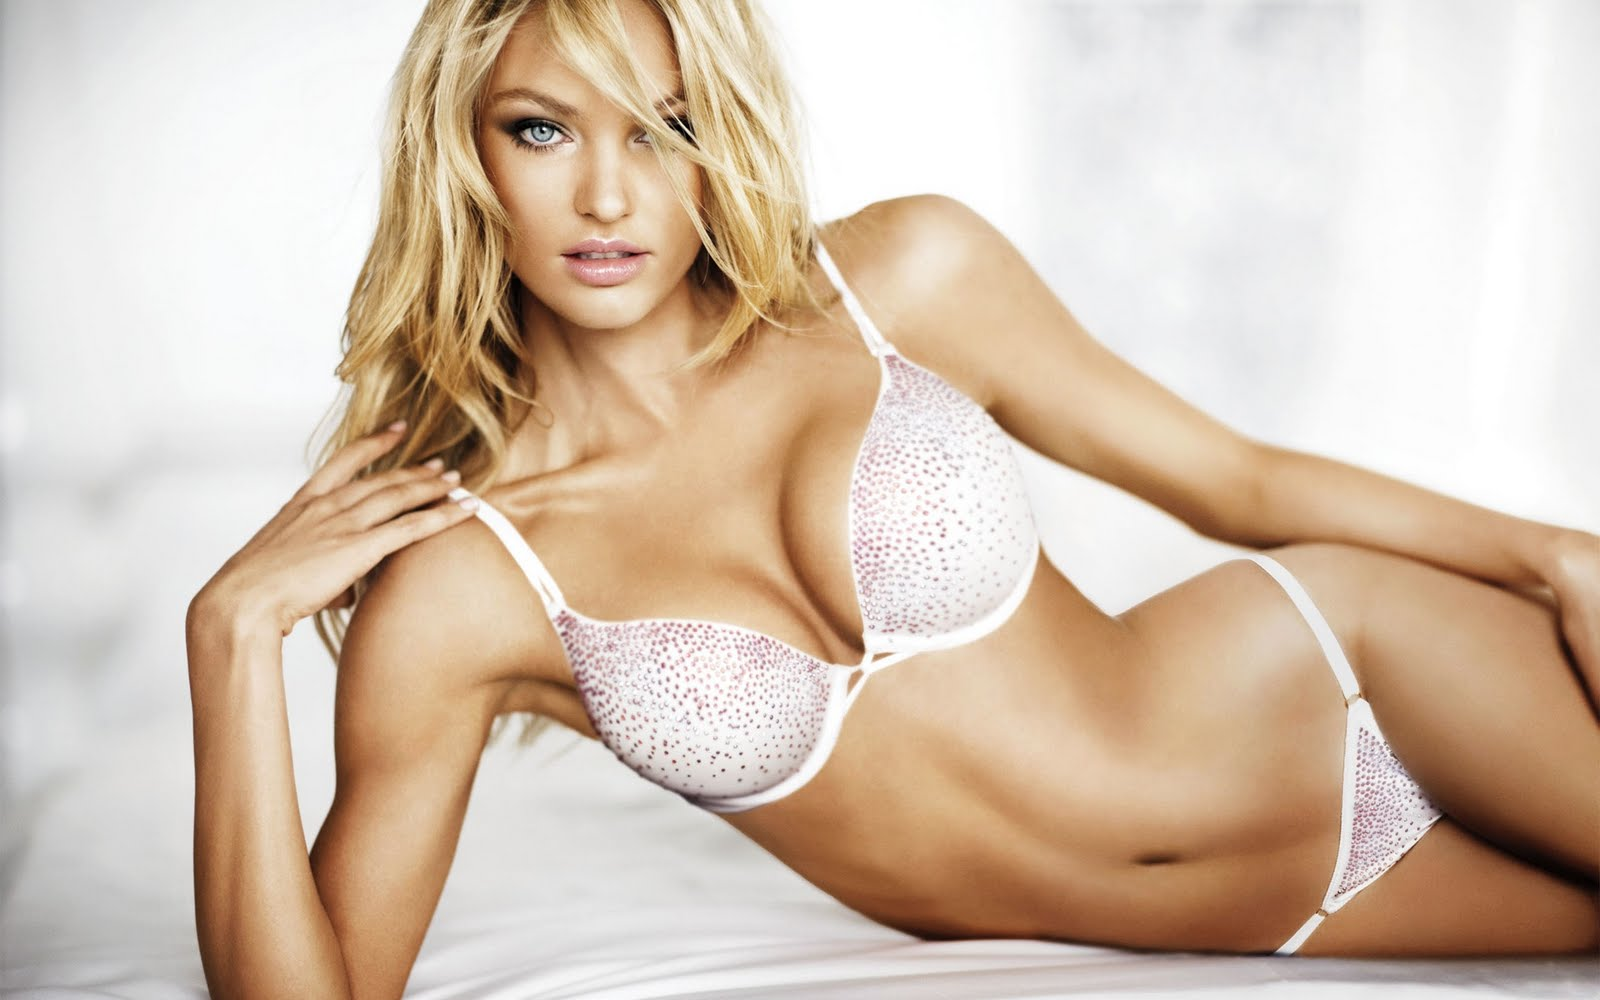 Candice Swanepoel photo gallery 5941 high quality pics of  - candice swanepoel hq wallpapers